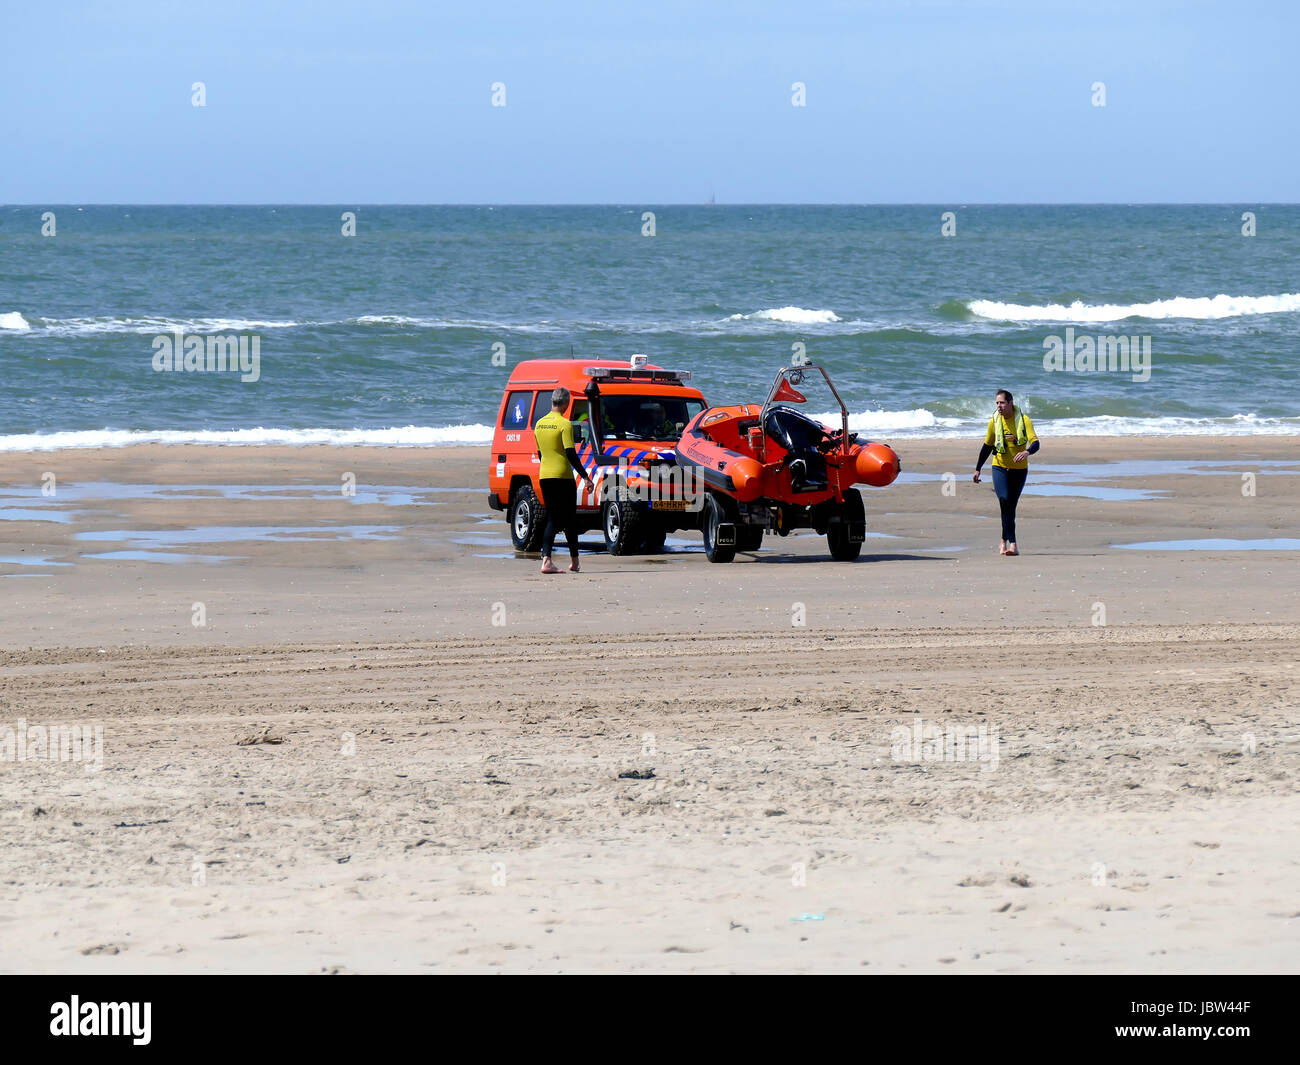 CASTRICUM, THE NETHERLANDS - JUNE 10, 2017: Speedboat, surf life saving vehicle and crew on the beach of the Dutch Stock Photo